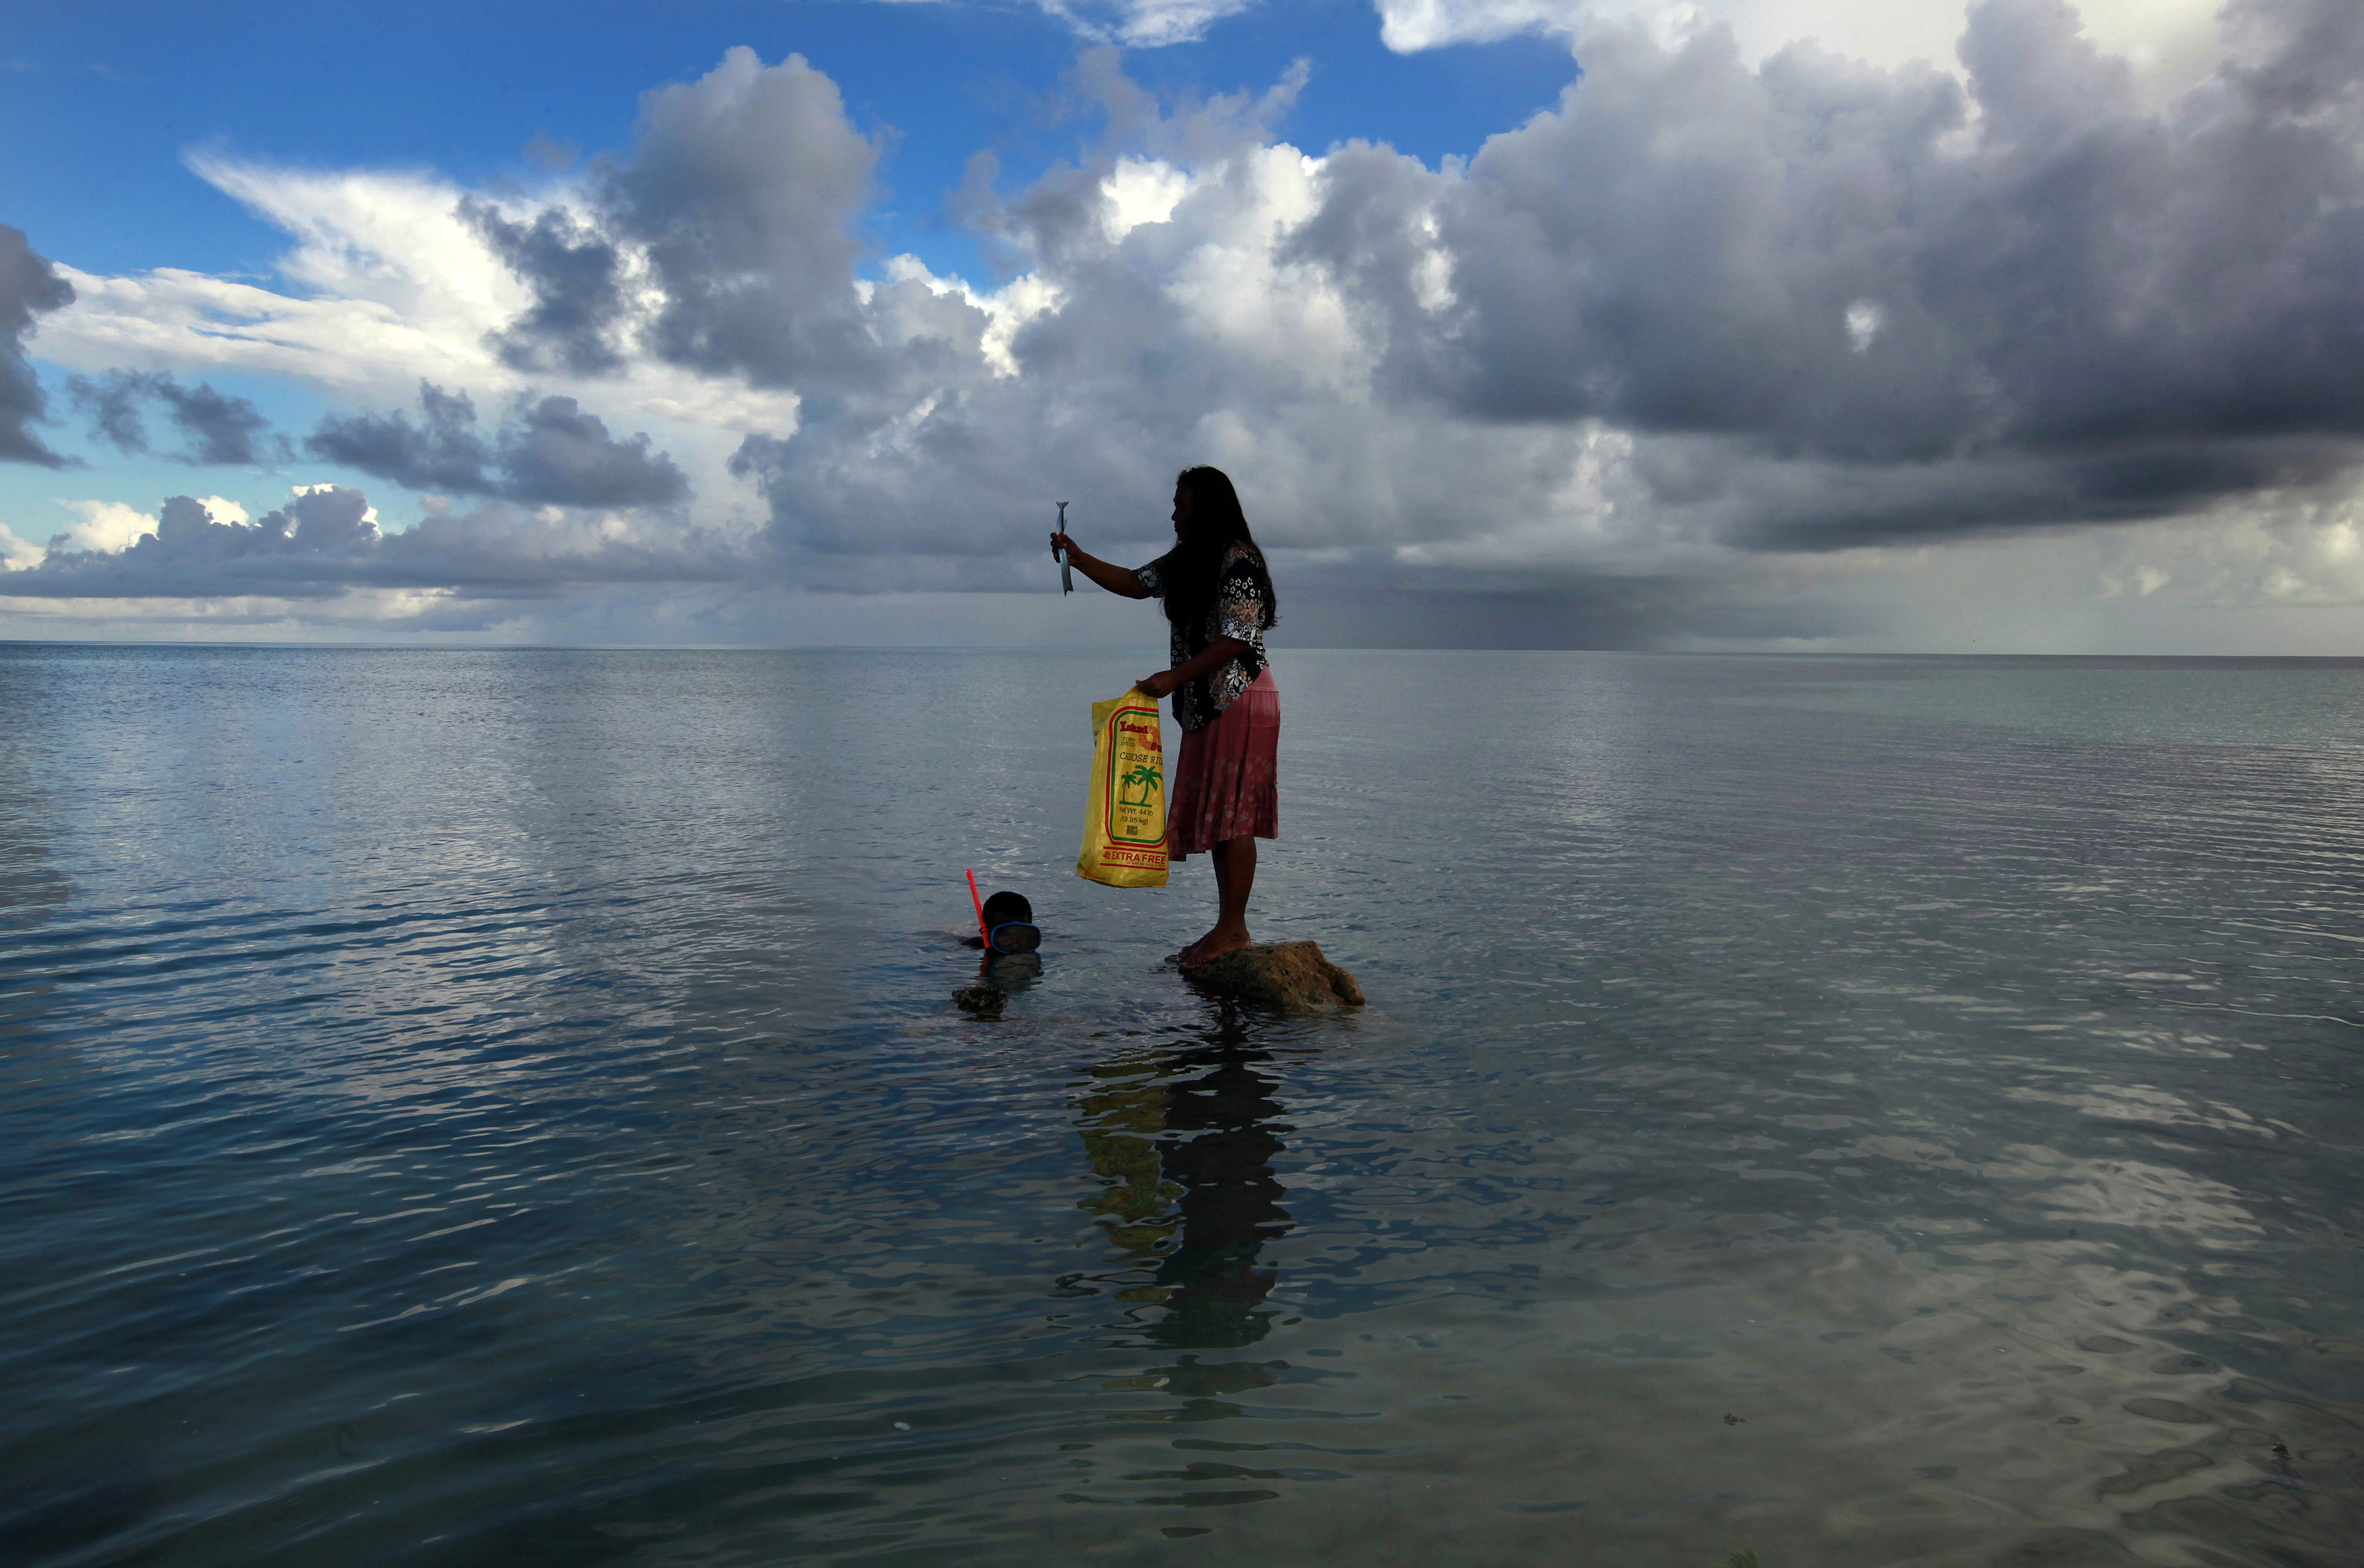 Photo © David Gray/Reuters | Kiribati